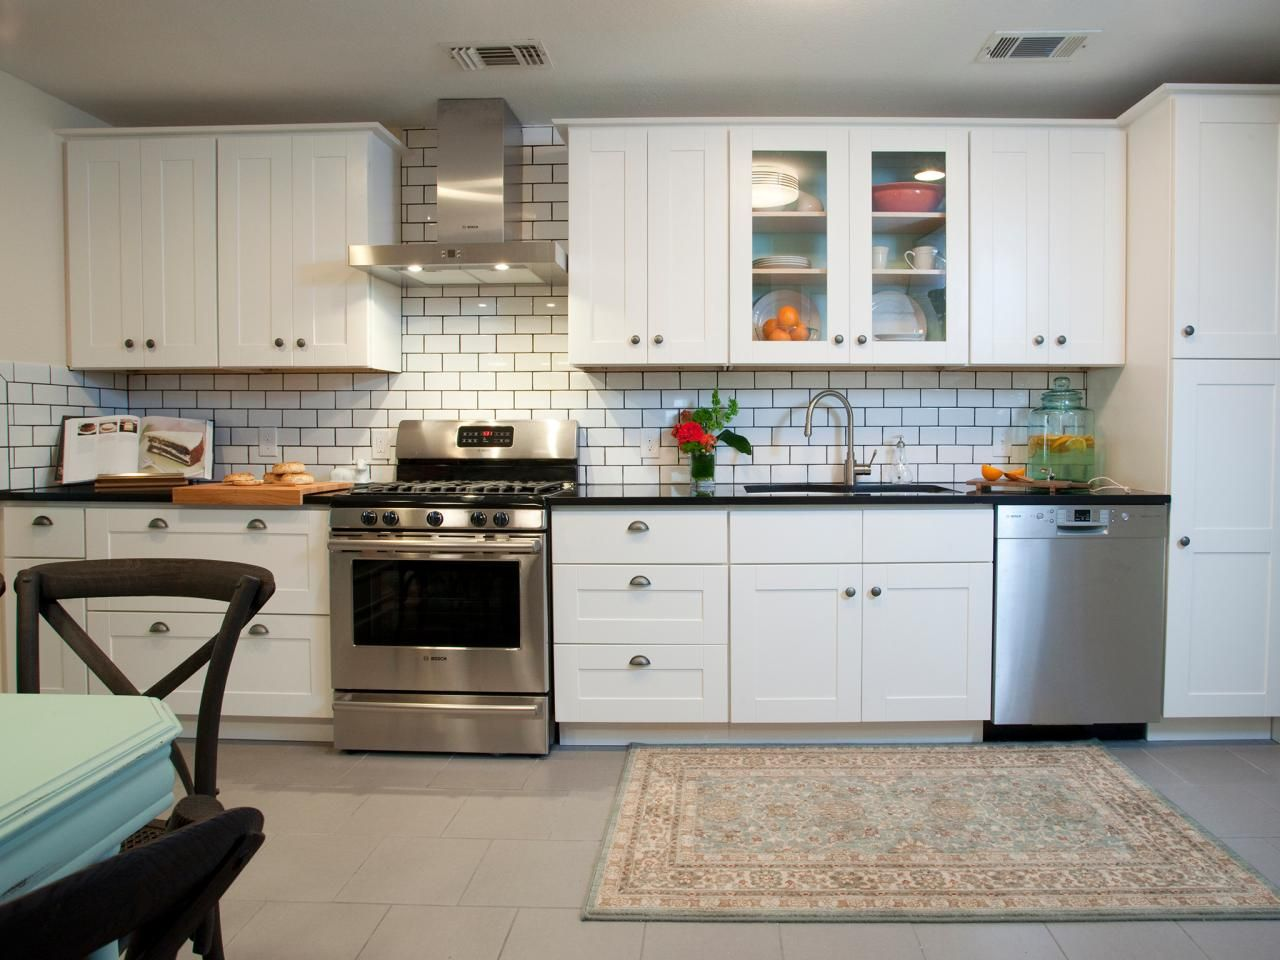 Dress your kitchen in style with some white subway tiles for Kitchen tiles pictures